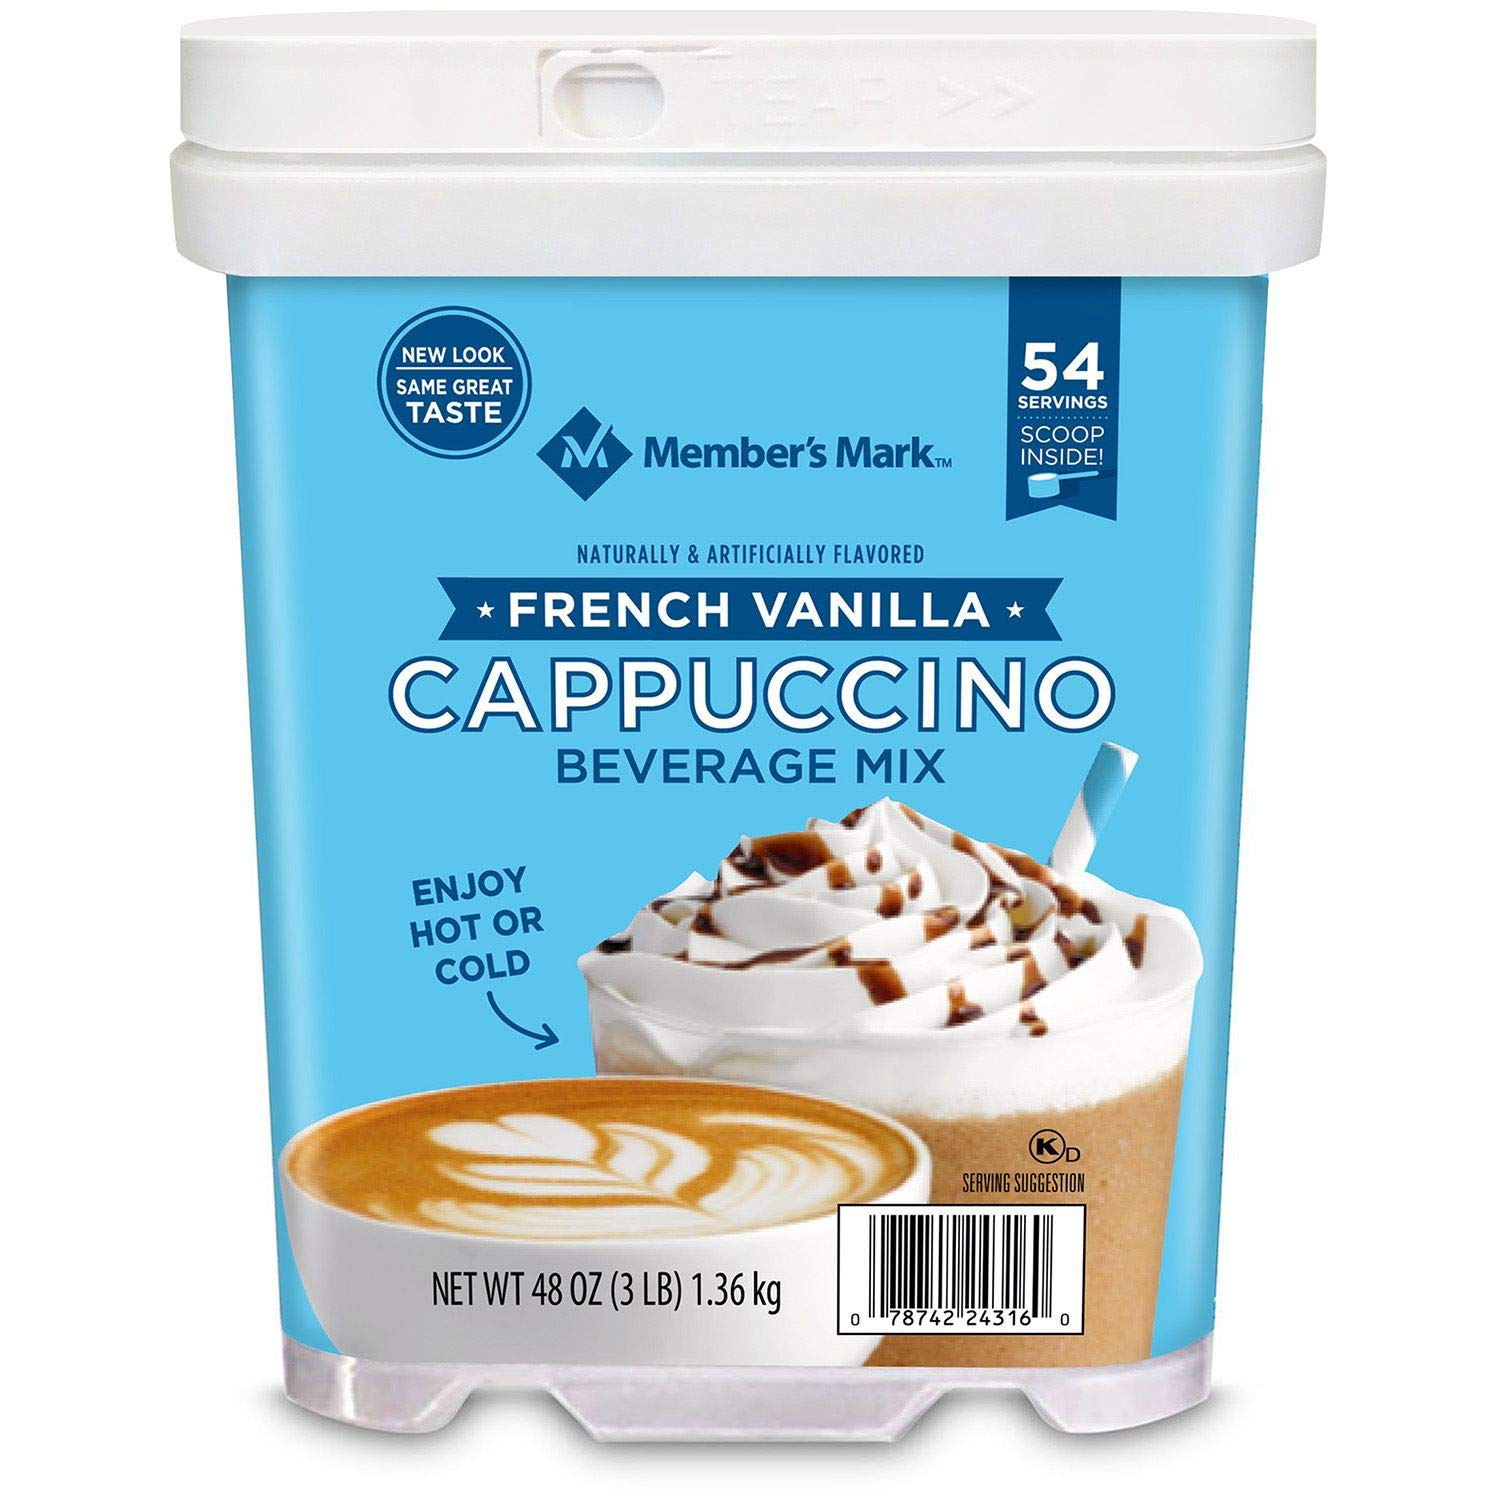 Member's Mark French Vanilla Cappuccino Beverage Mix 48 oz. (pack of 3) A1